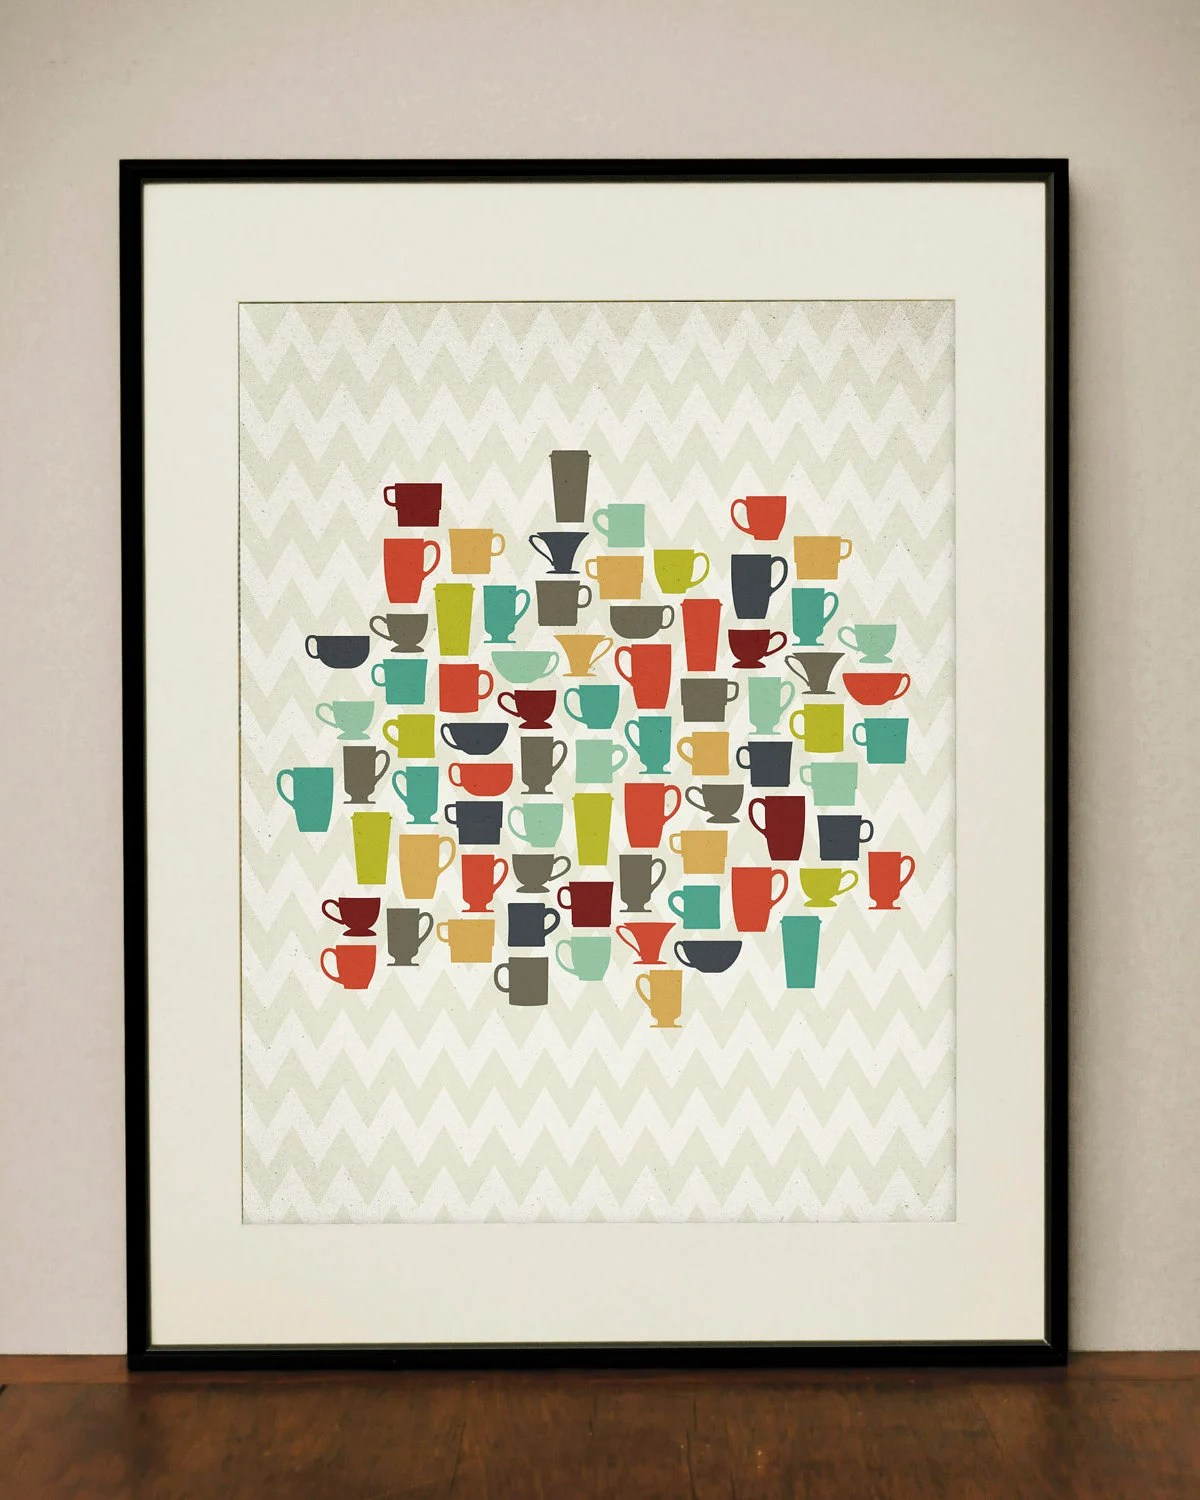 Retro Kitchen Coffee Cups 11x14 Art Print by ProjectType on Etsy